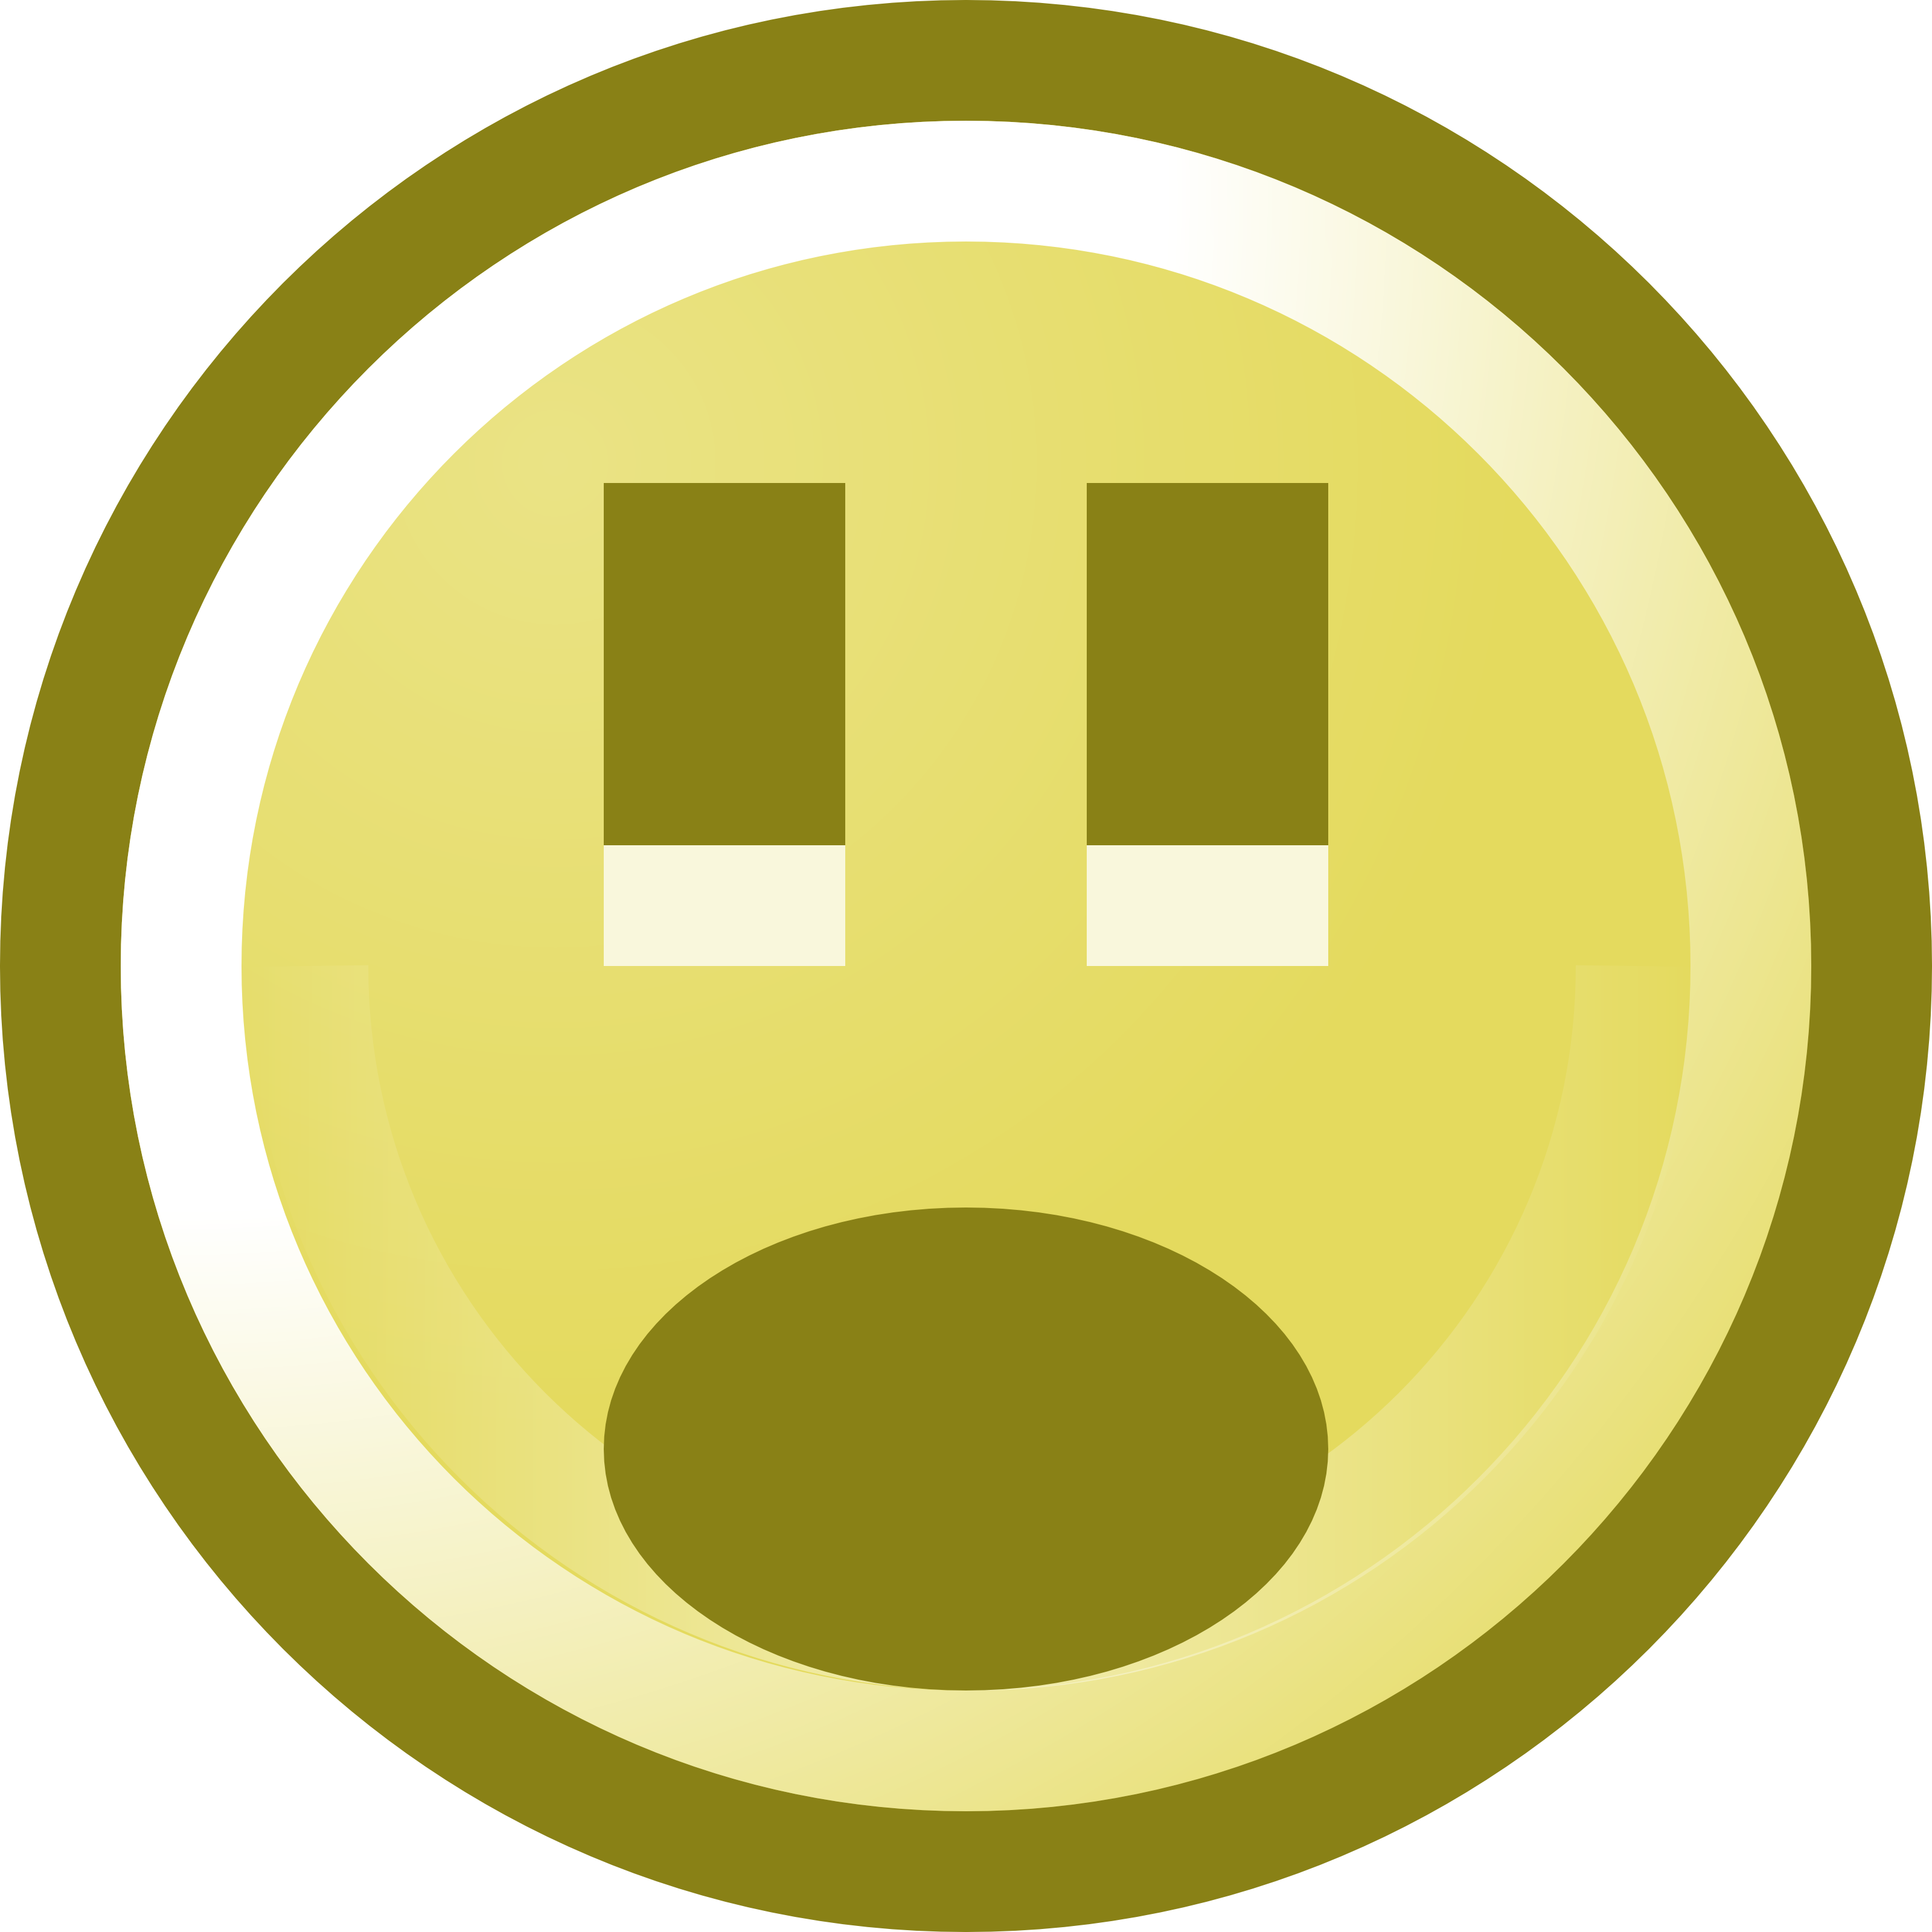 3200x3200 Free Shocked Smiley Face Clip Art Illustration